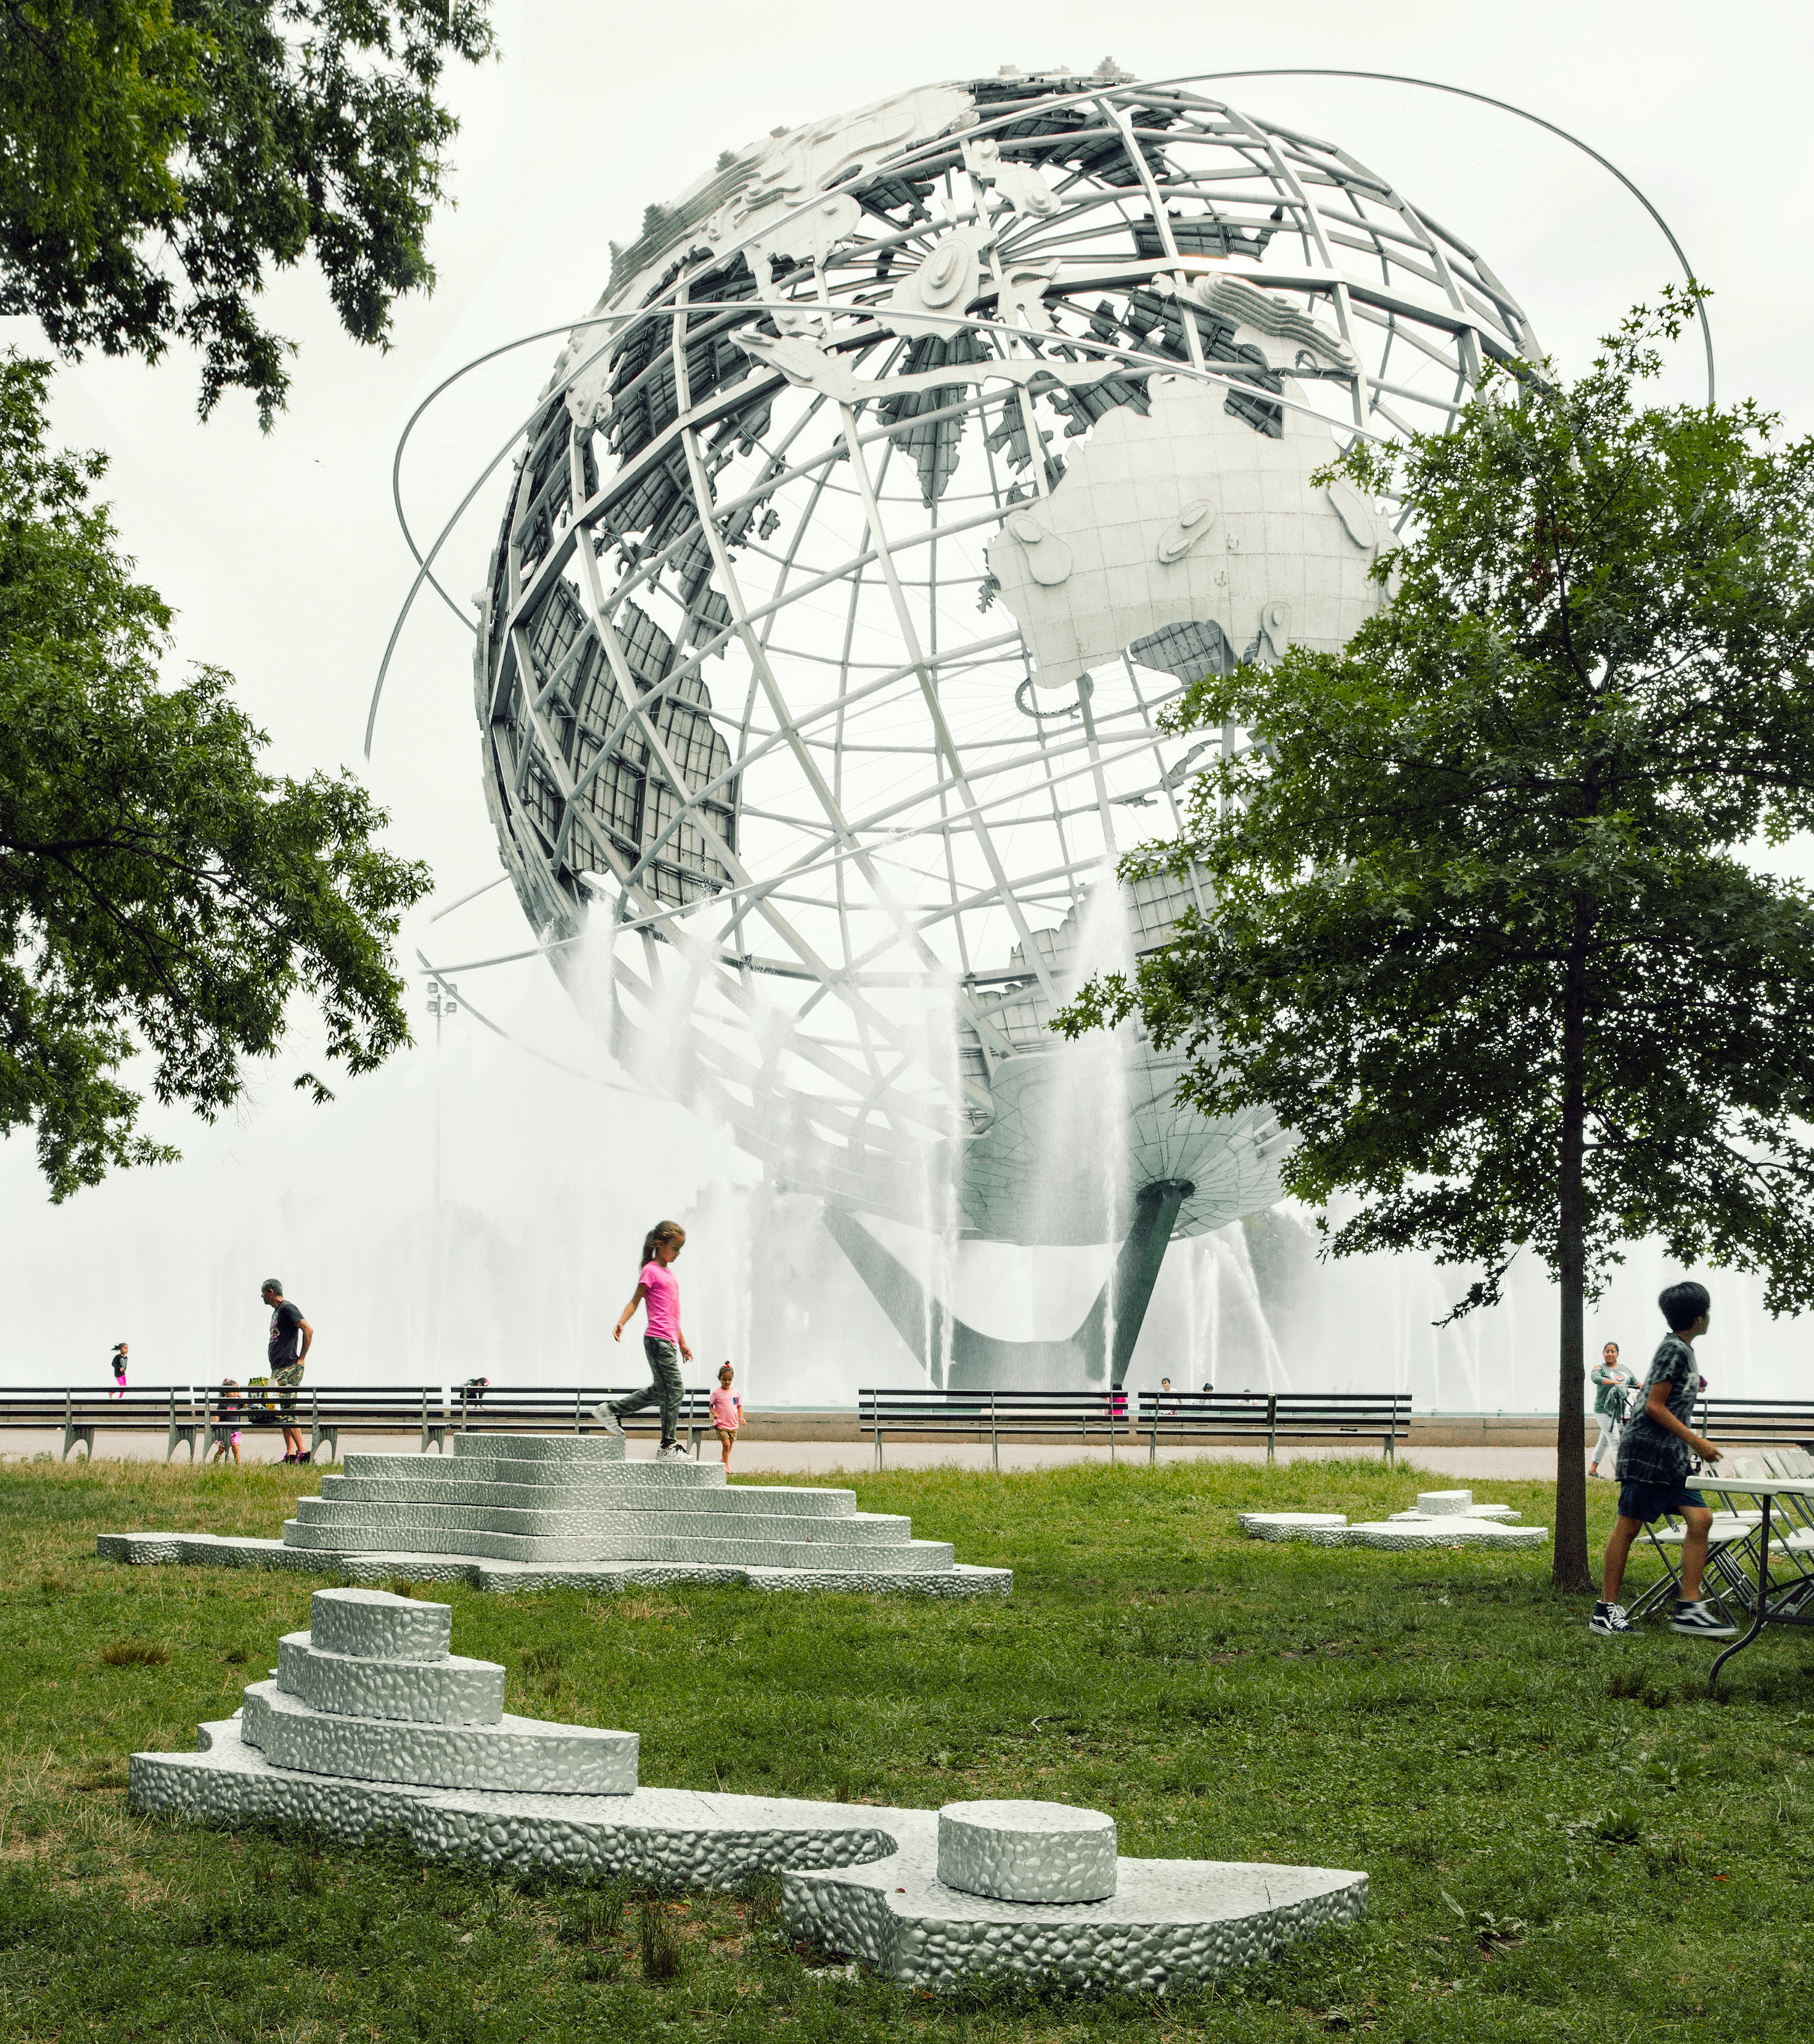 Flushing Park Quens - Islands of the Unisphere (foreground) by Zaq Landsburg